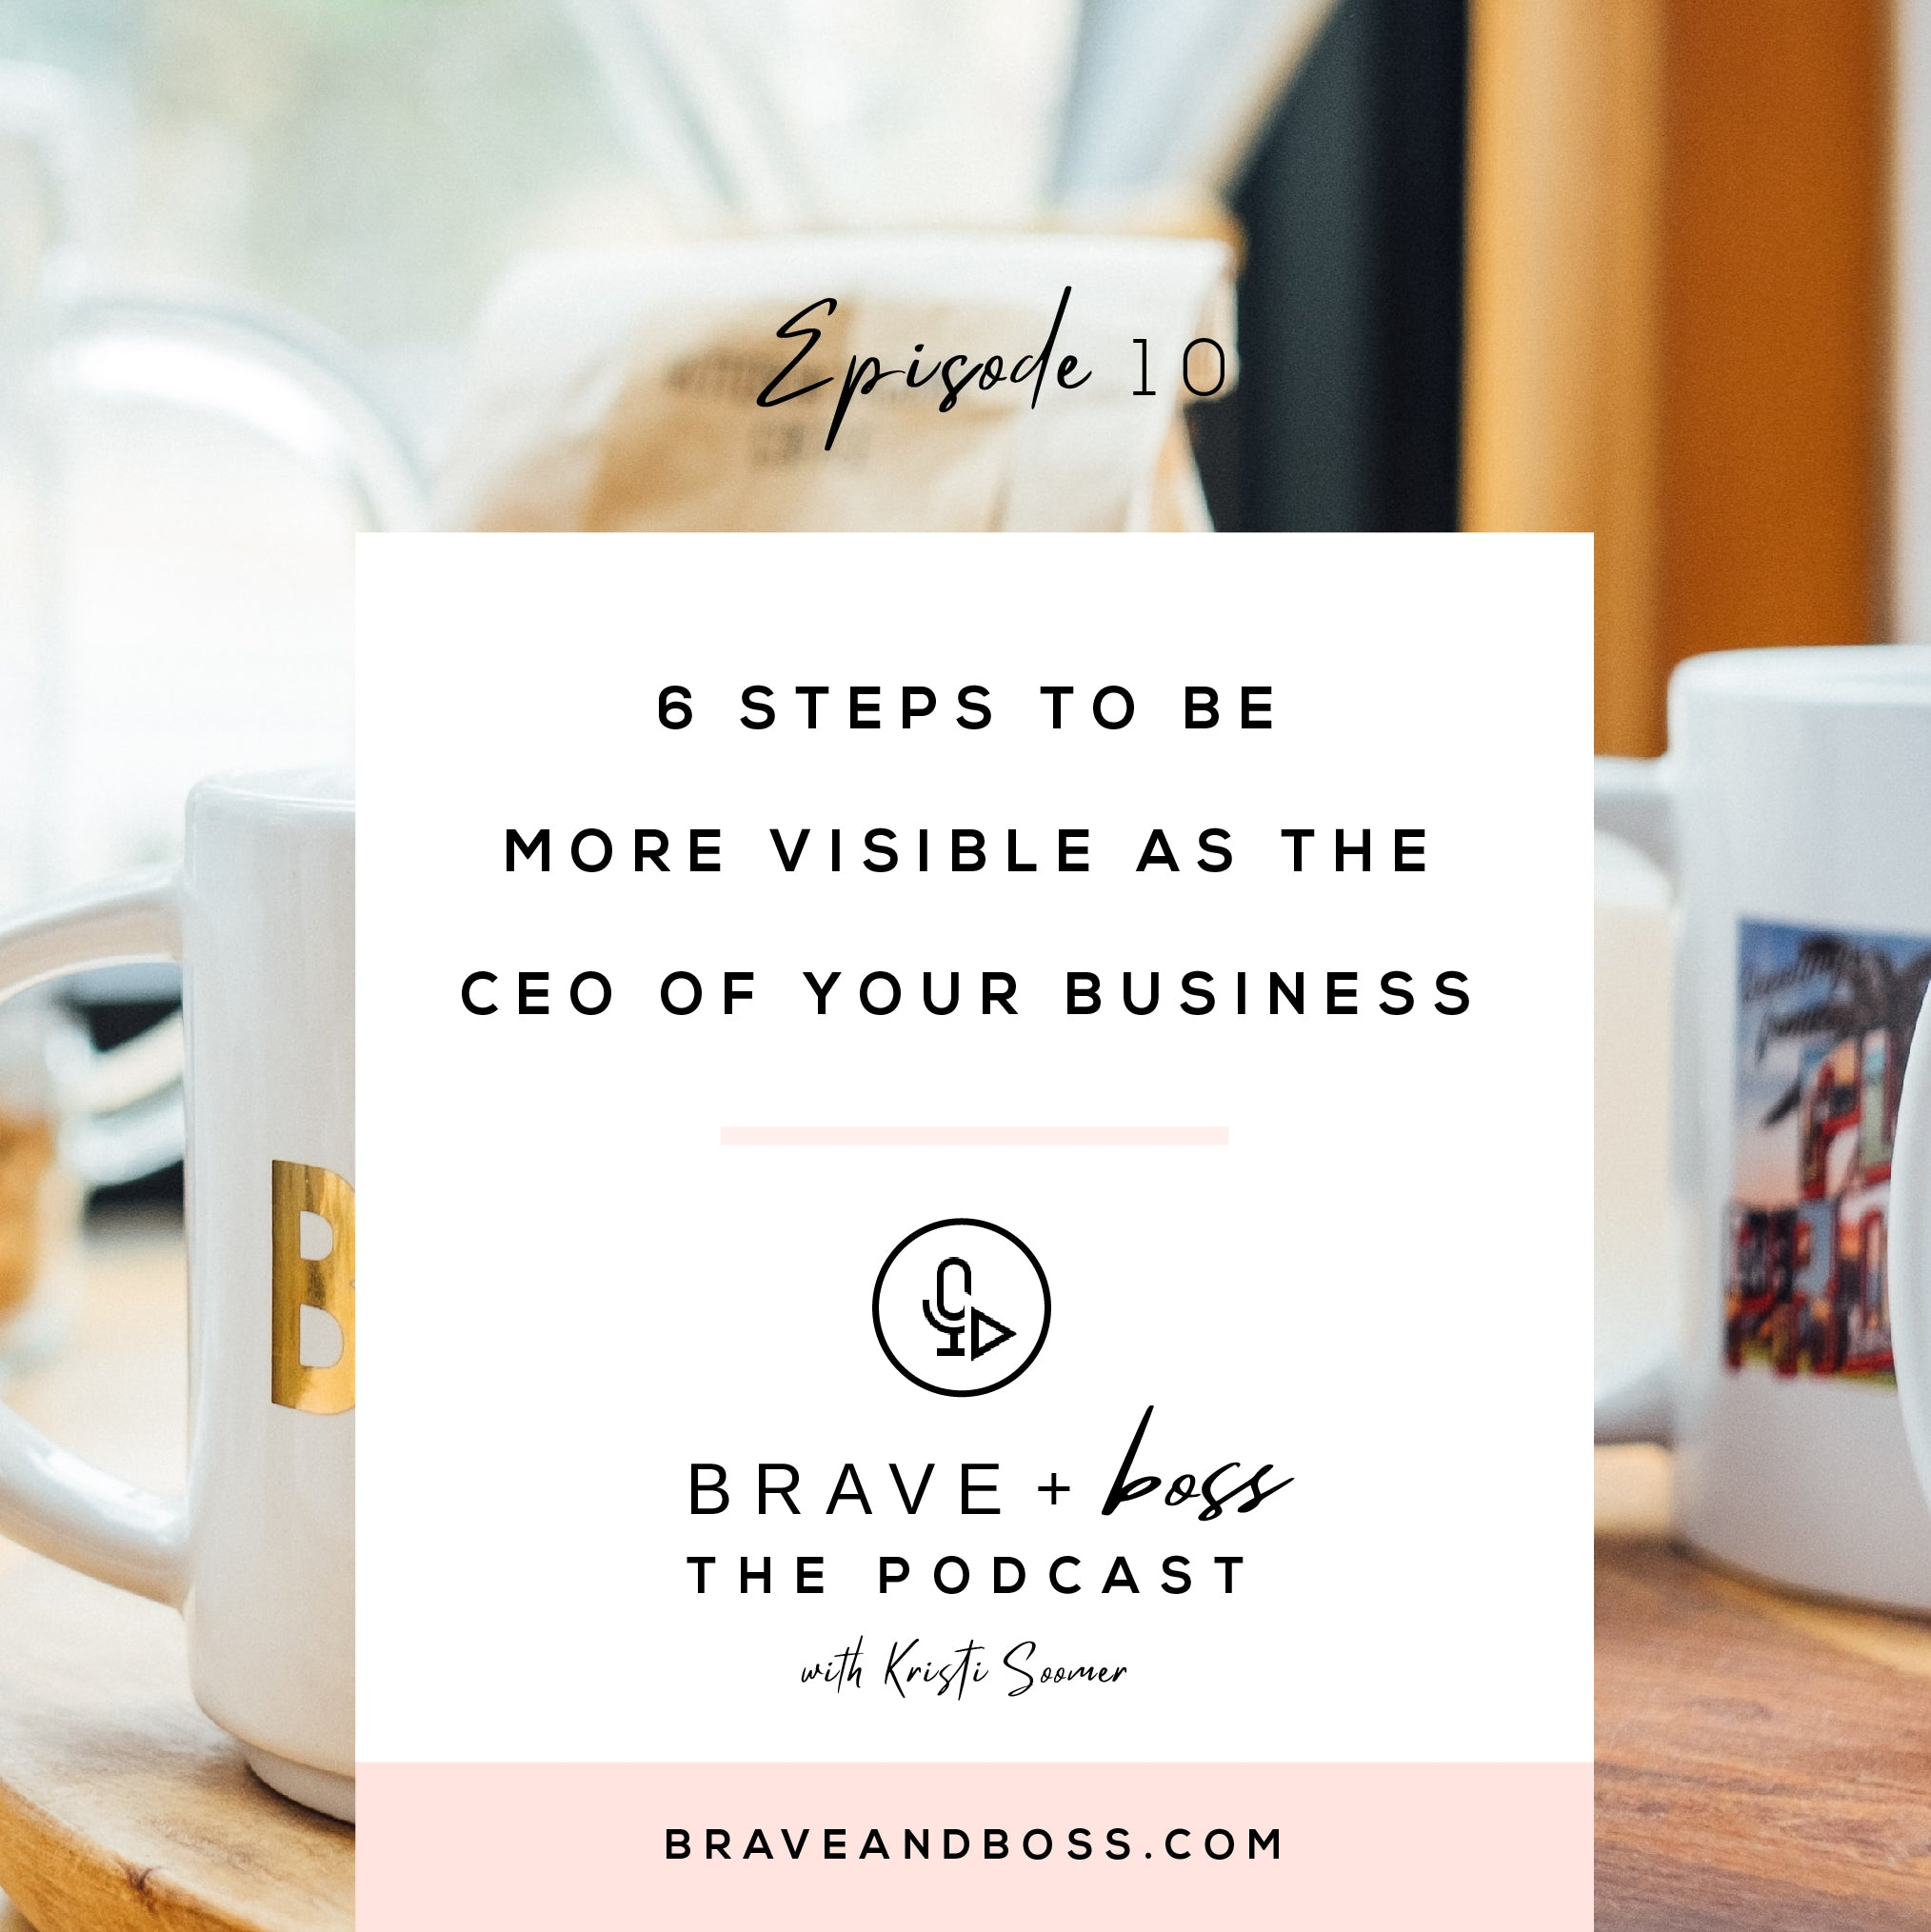 6 Steps to Be More Visible as the CEO of your Business